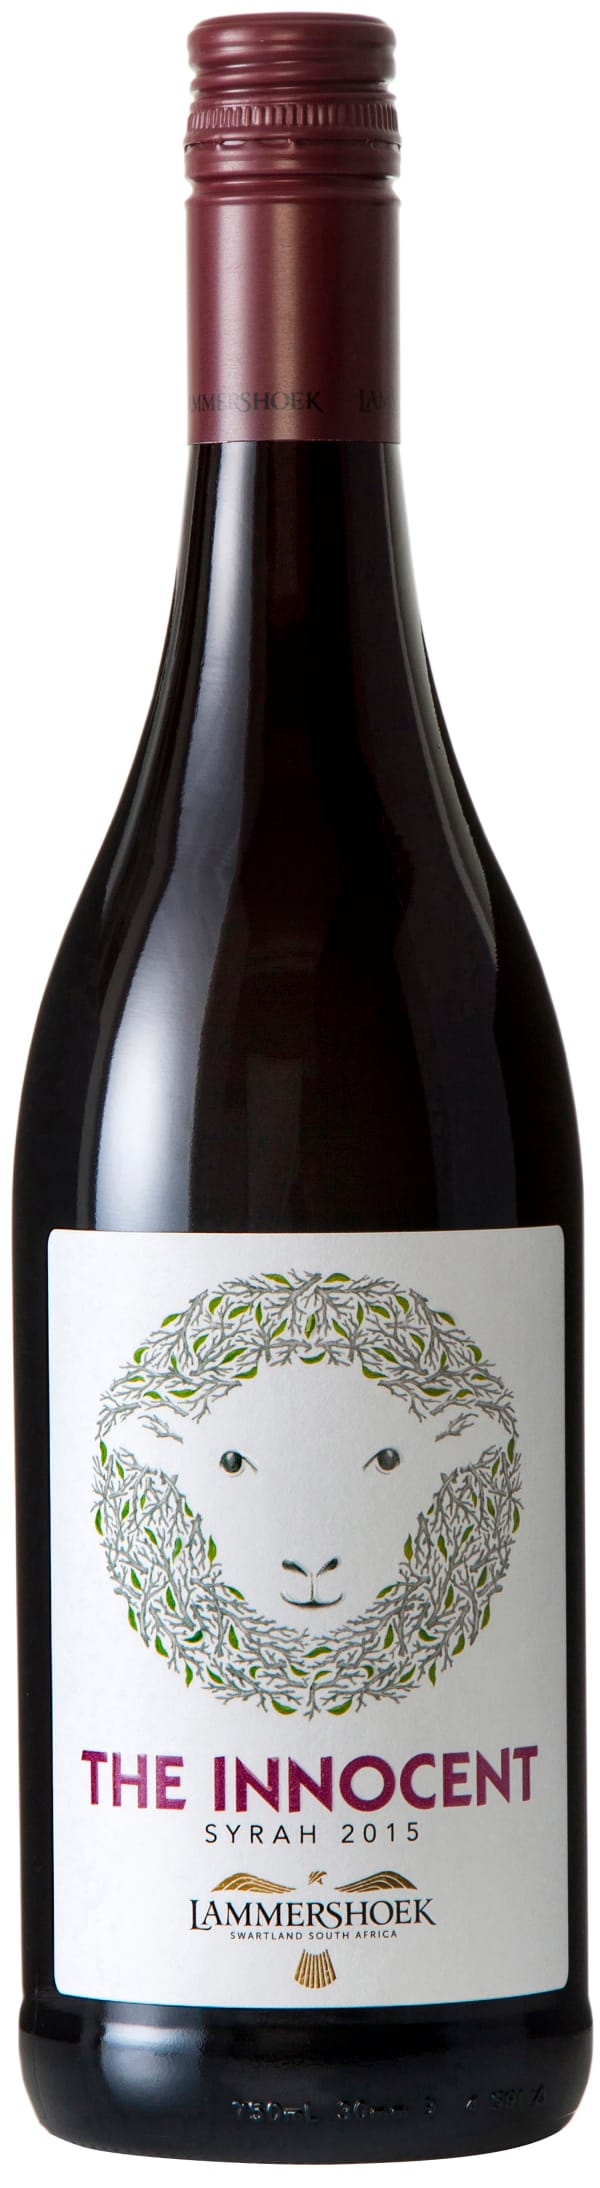 Lammershoek The Innocent Syrah 2015